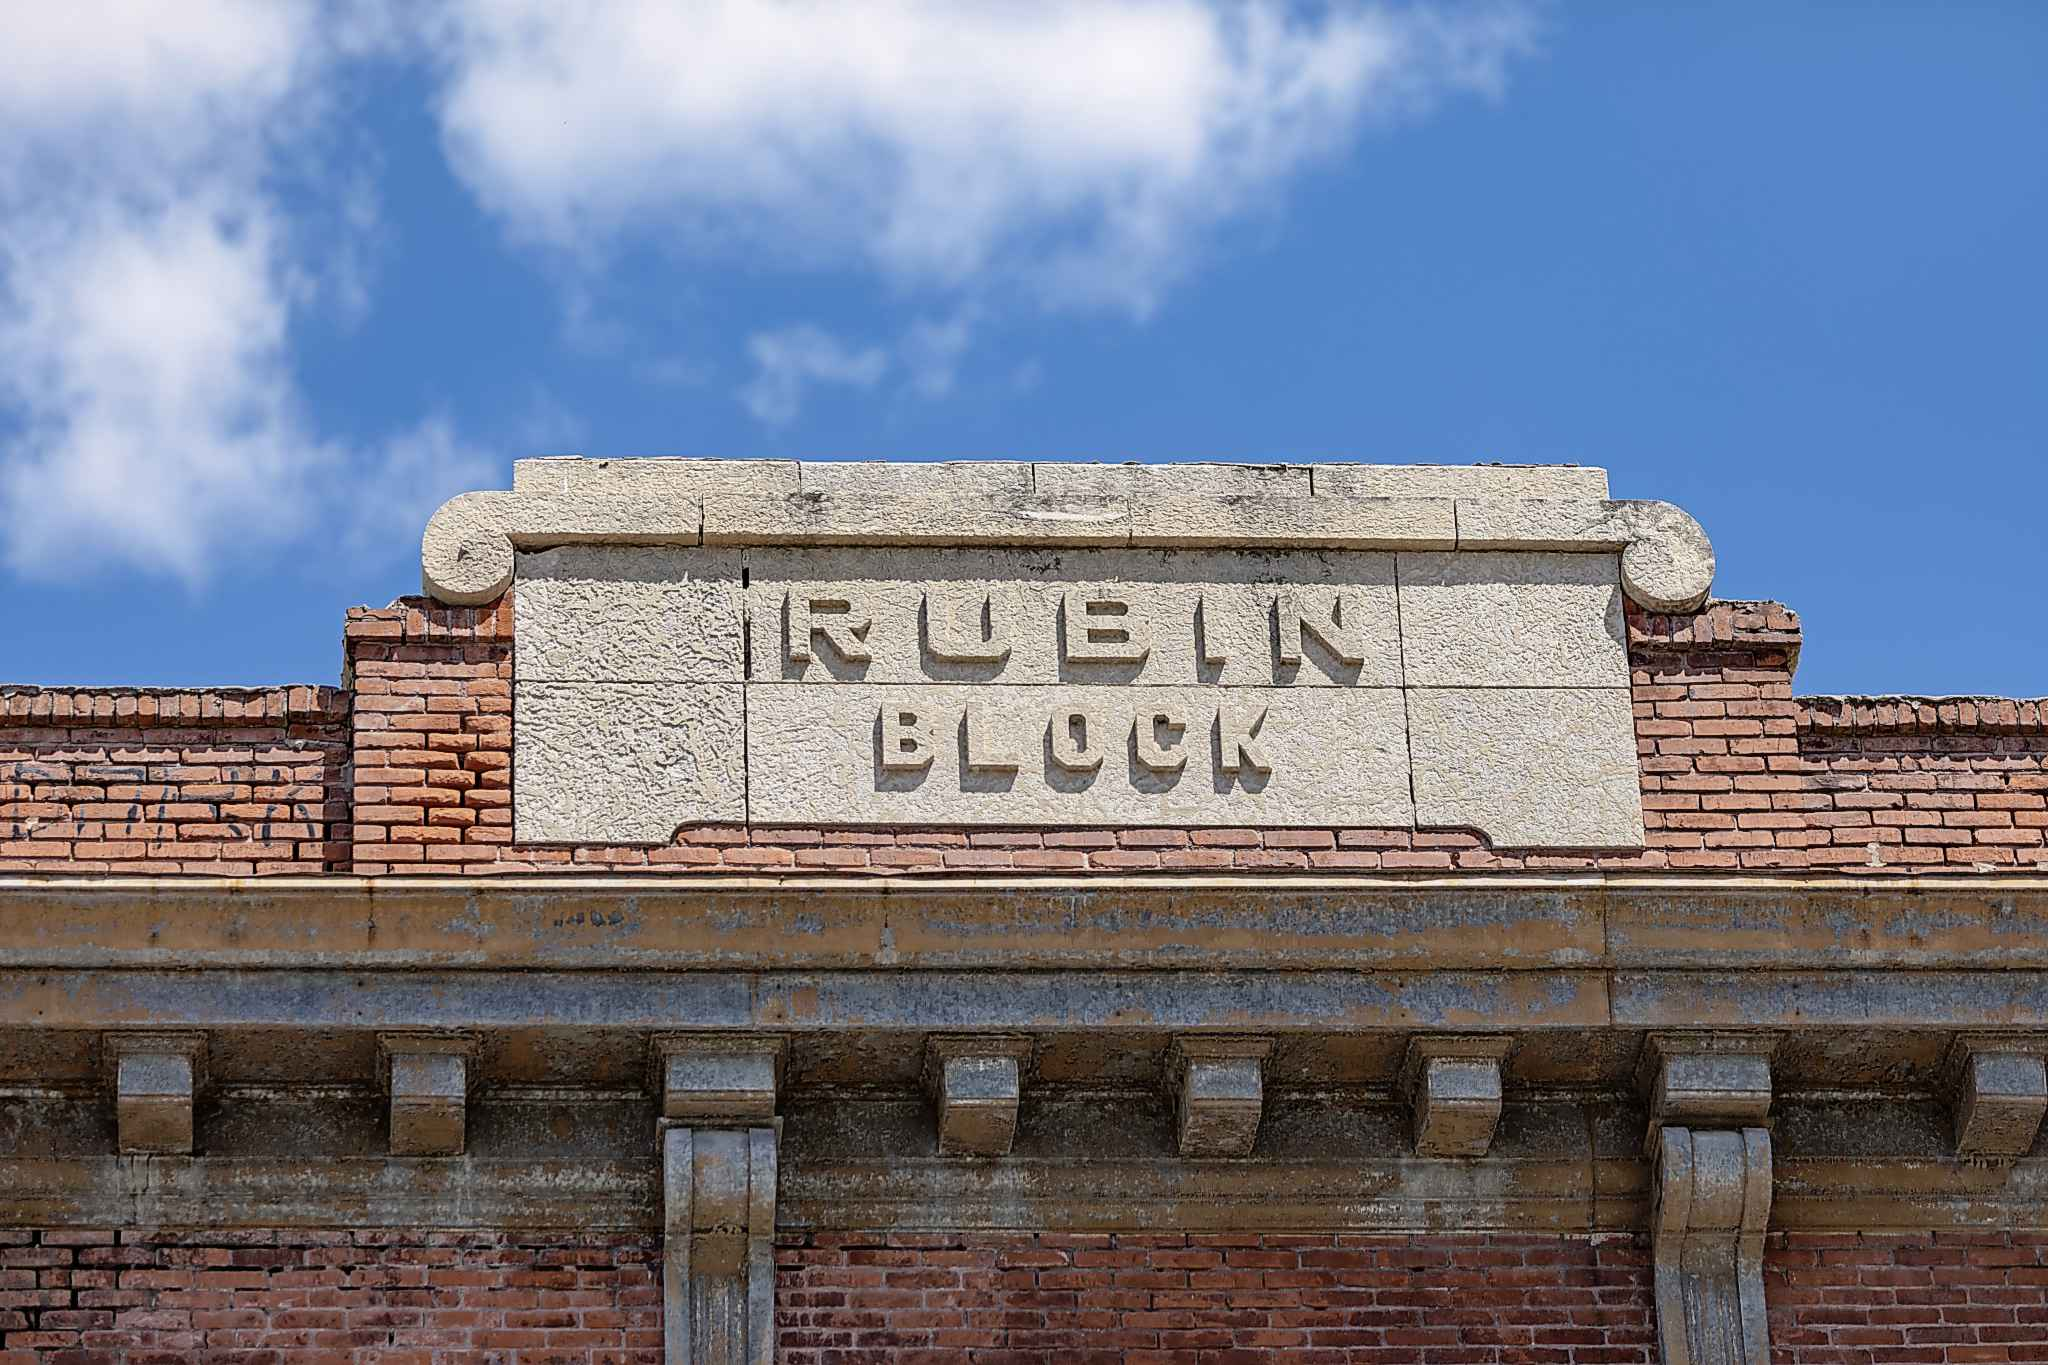 The abandoned Rubin Block is located at 270 Morley Ave. in Riverview.